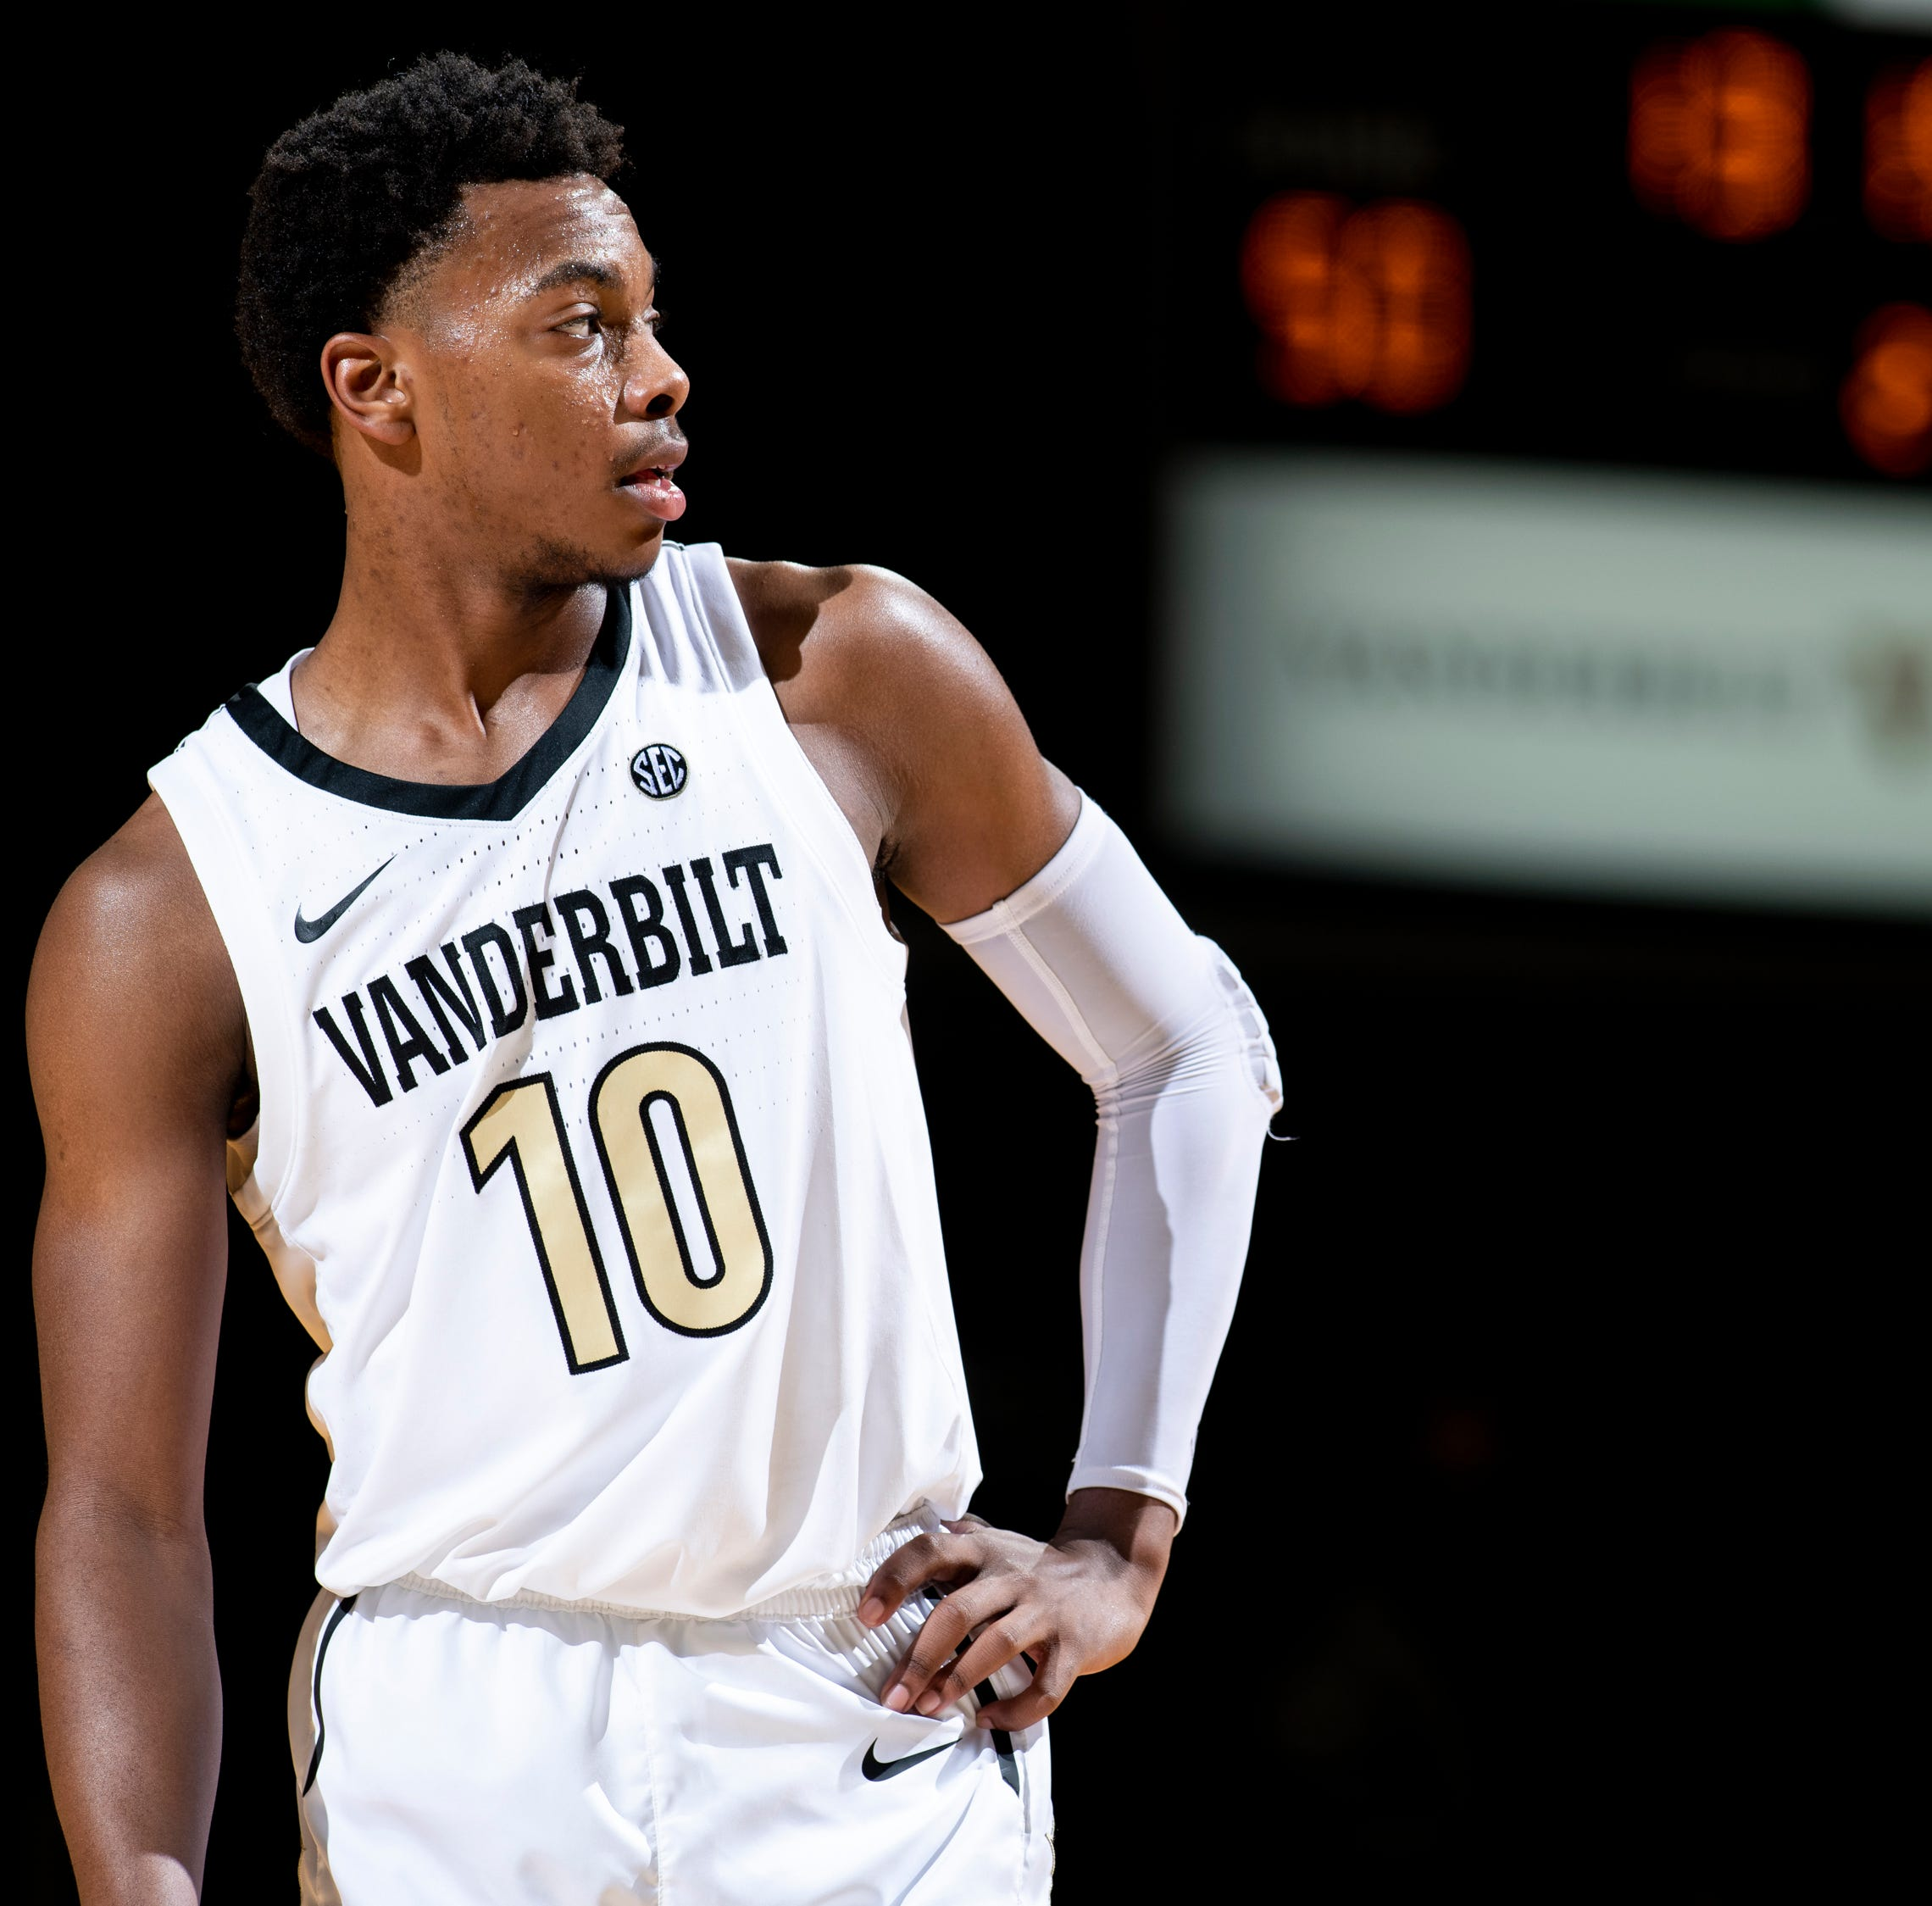 How Darius Garland's 33 points nearly broke Vanderbilt record in his fourth game